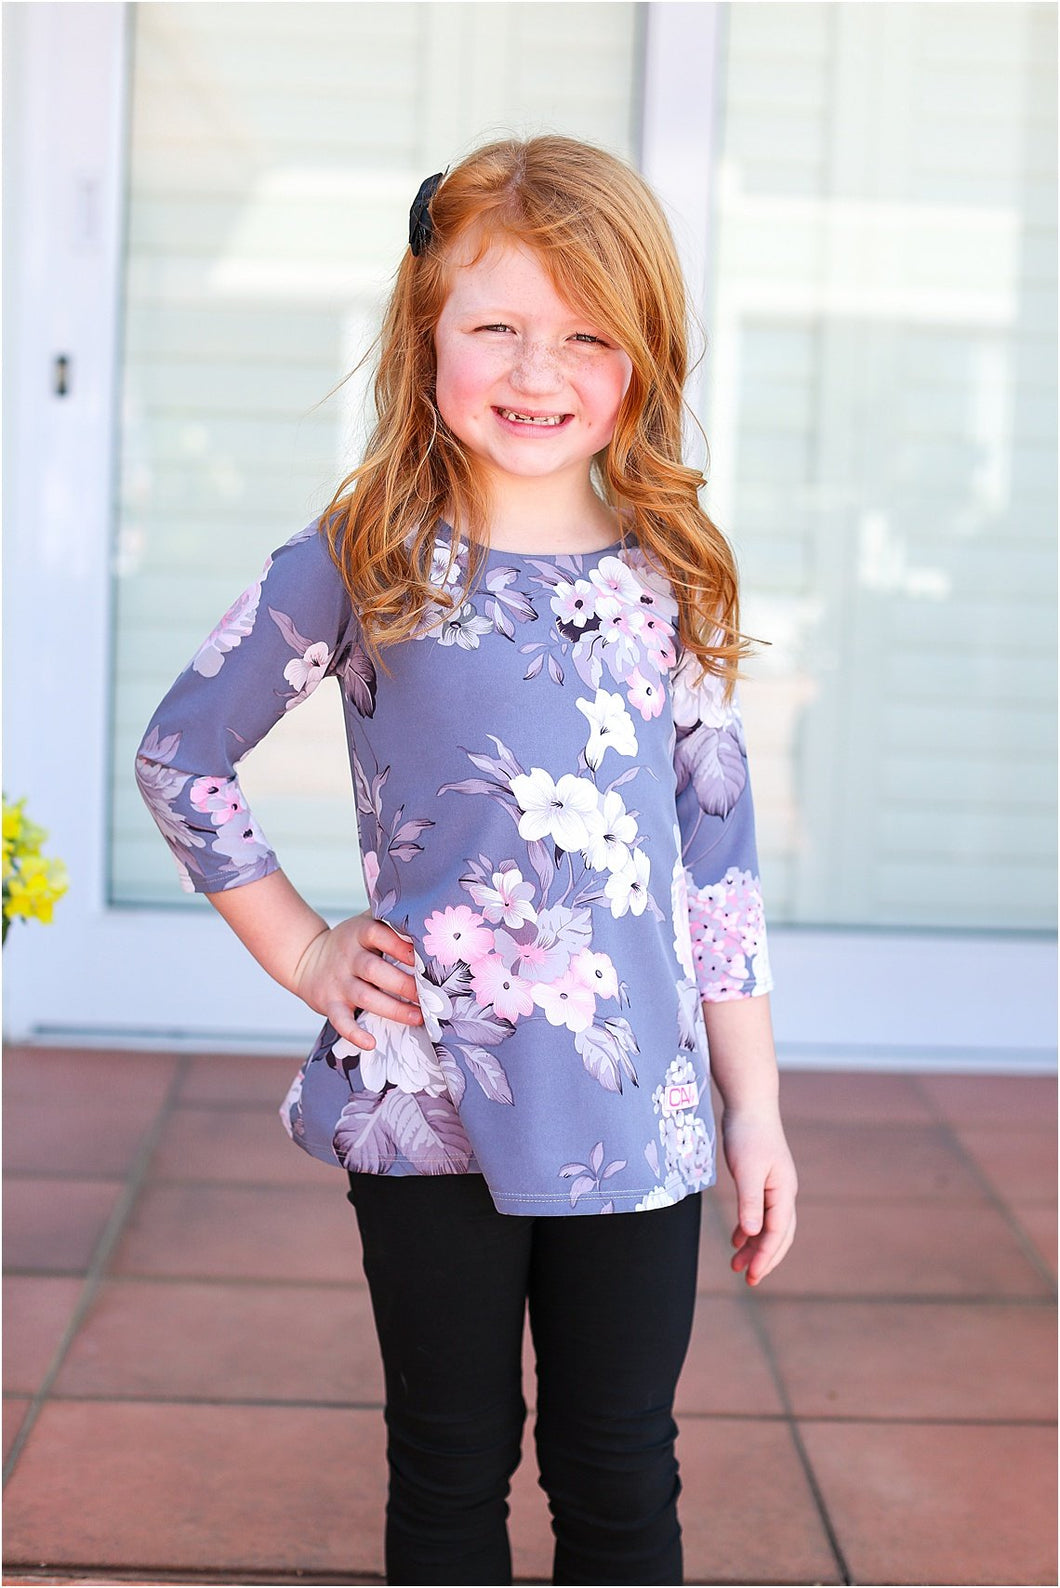 Style 276 - Kiddies Top - CAN